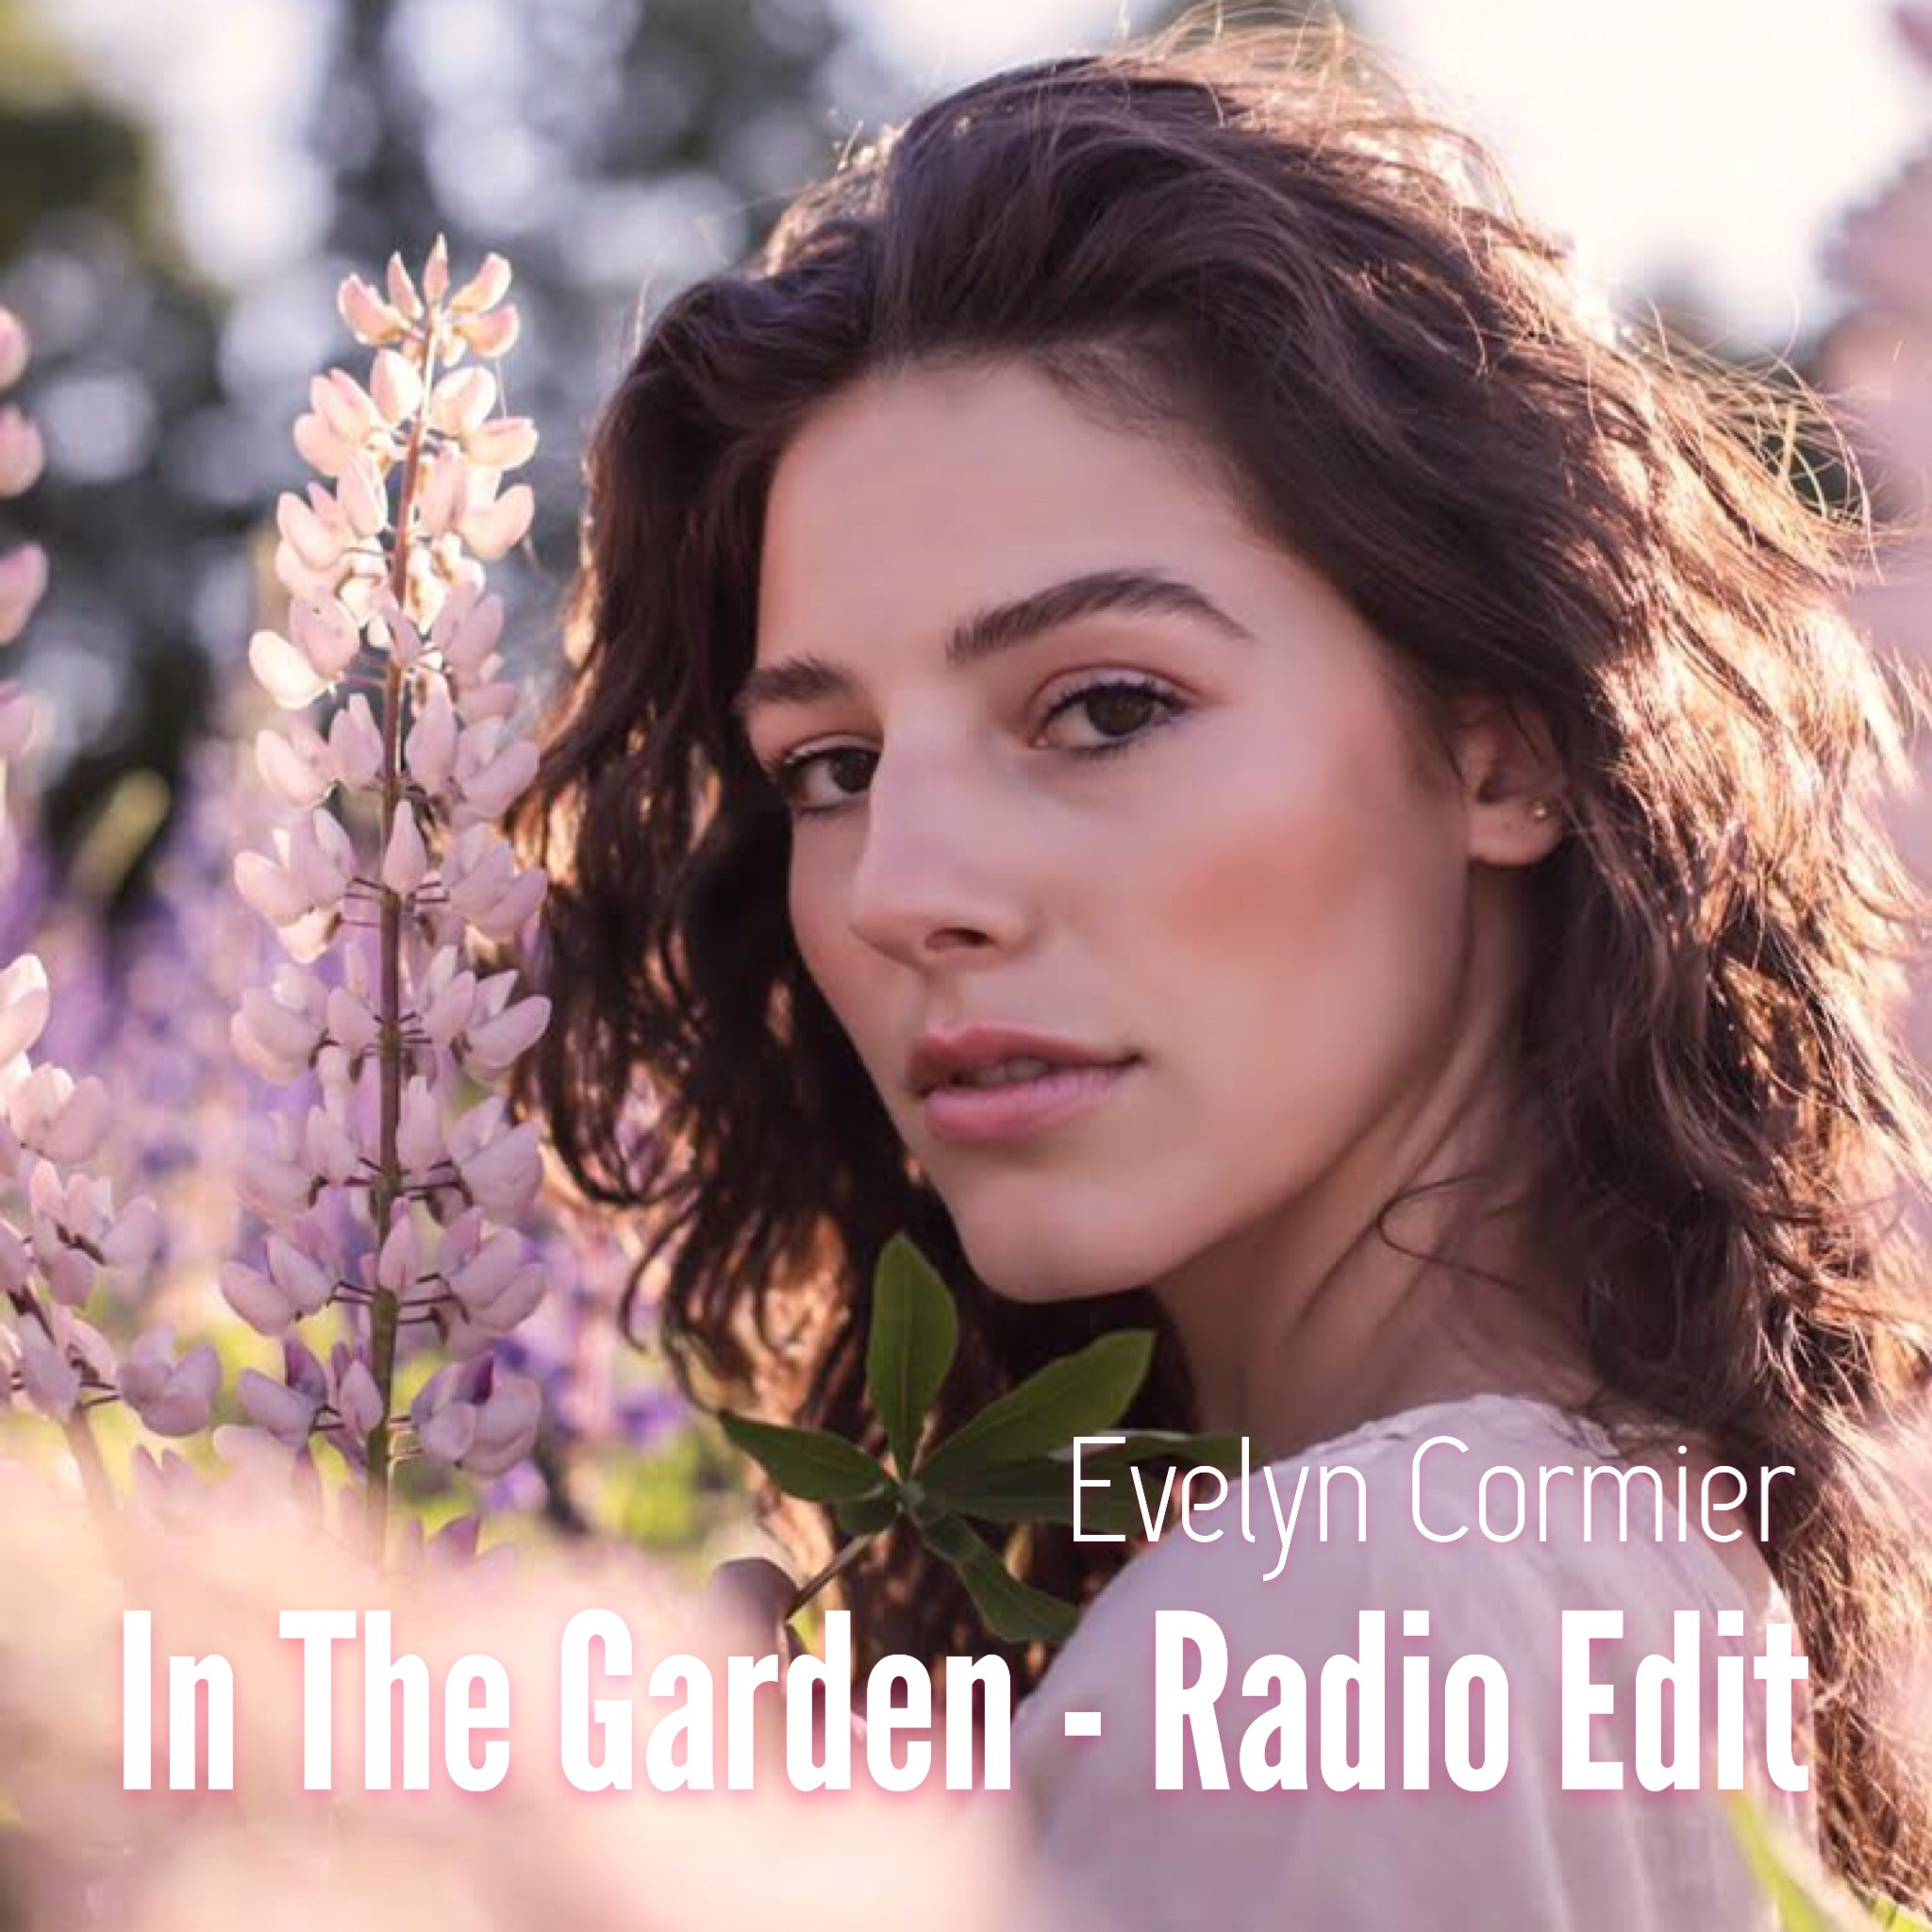 'AMERICAN IDOL' FINALIST EVELYN CORMIER RELEASES NEW SINGLE